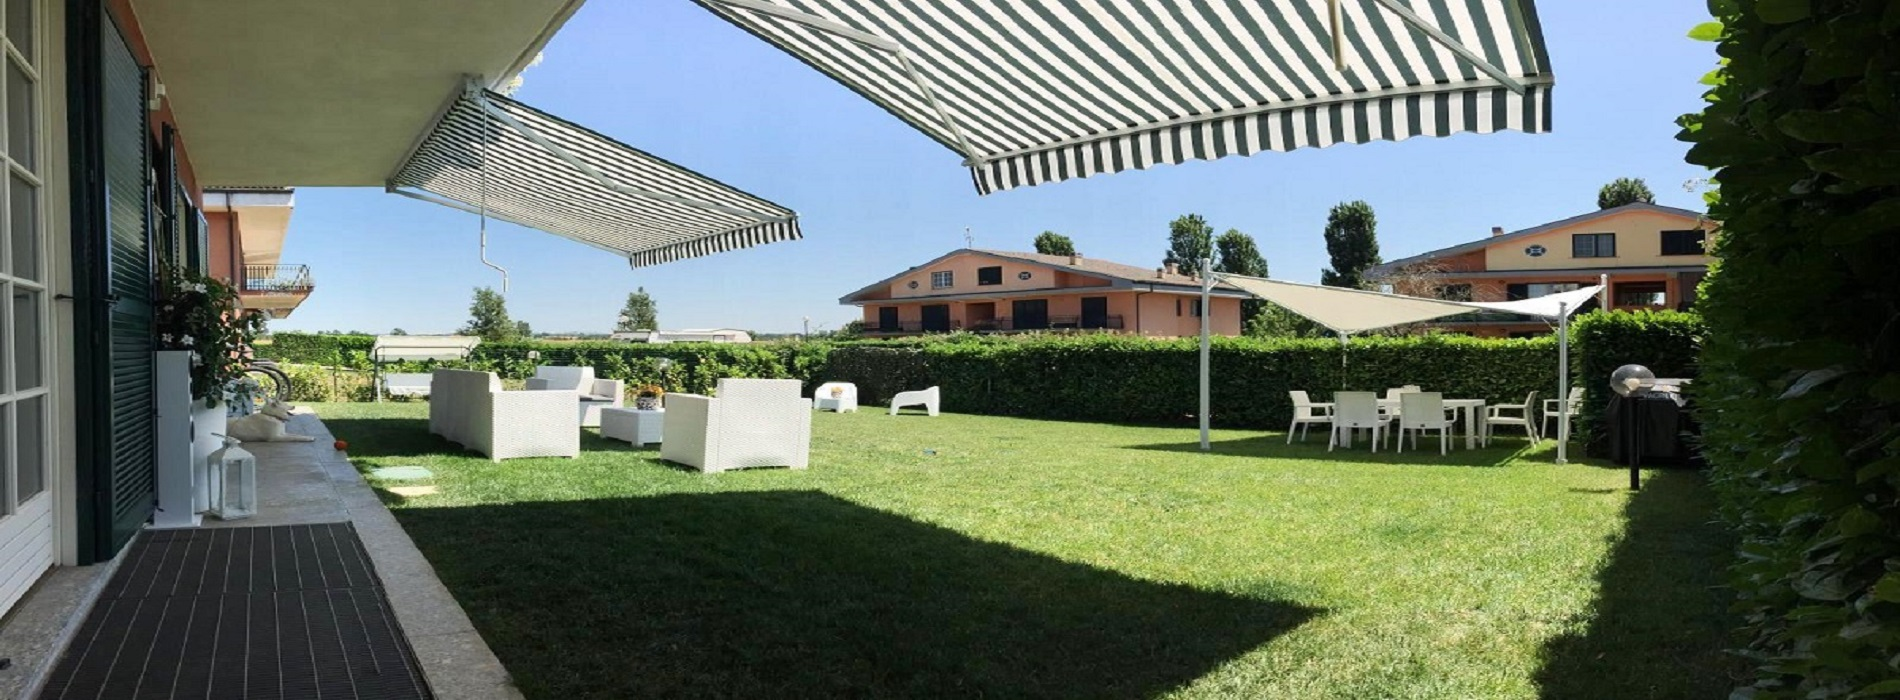 FUBINE MONFERRATO (AL) – GOLF CLUB MARGARA